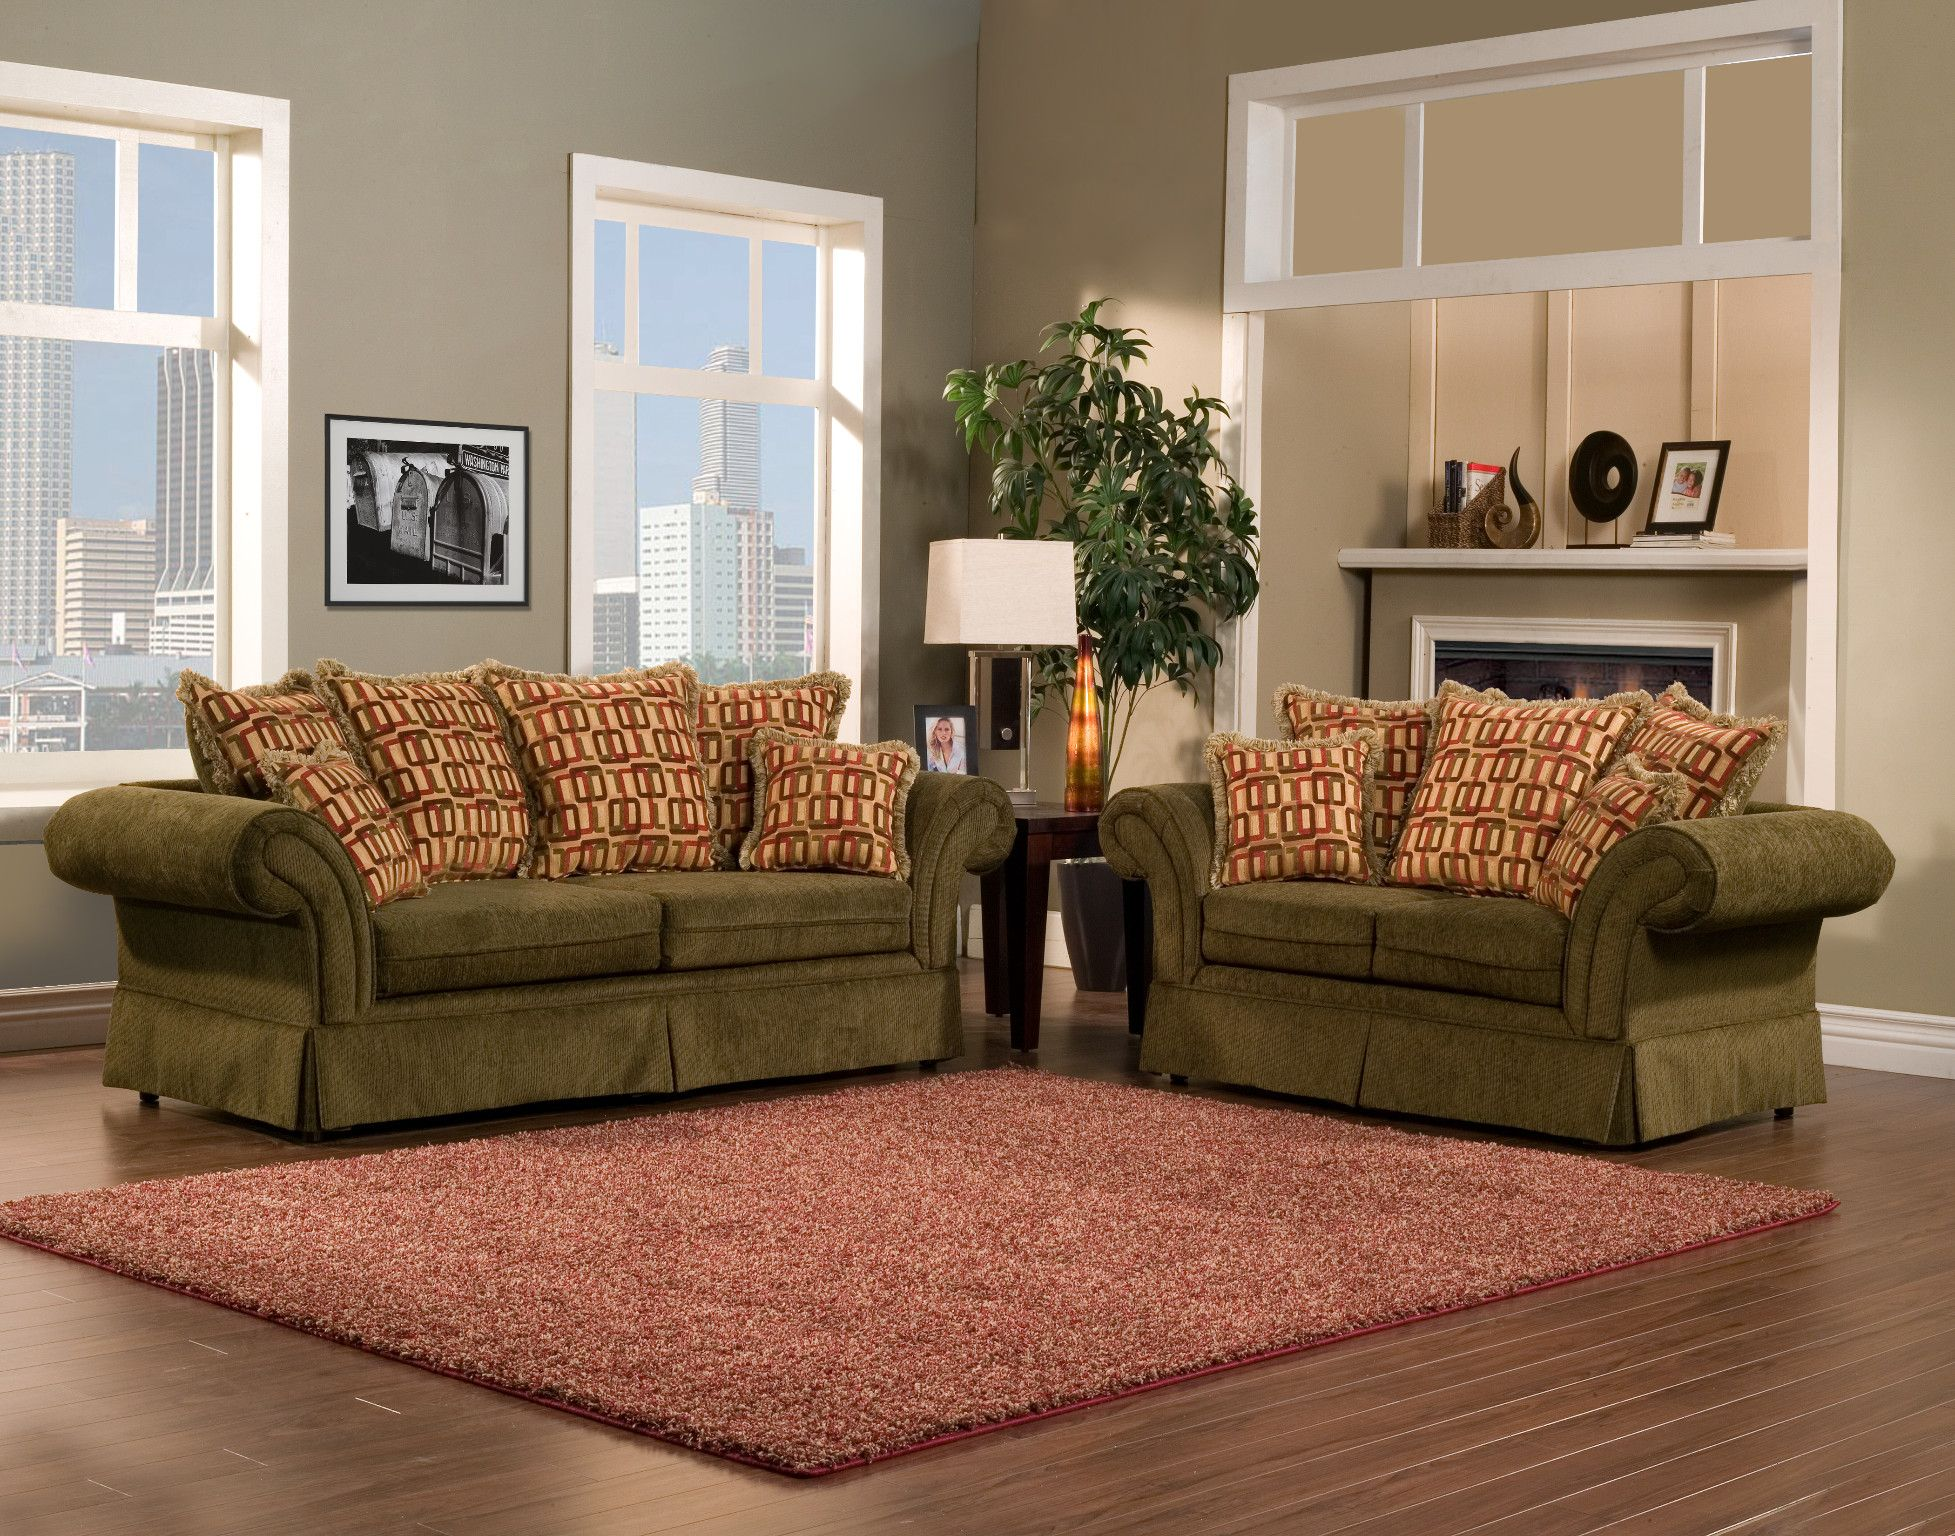 Pleasureable Olive Green Fabric Traditional Sofa With Red Cushions As Well As Grey Wall Painted Also Green Sofa Living Living Room Green Green Sofa Living Room #olive #green #living #room #rug